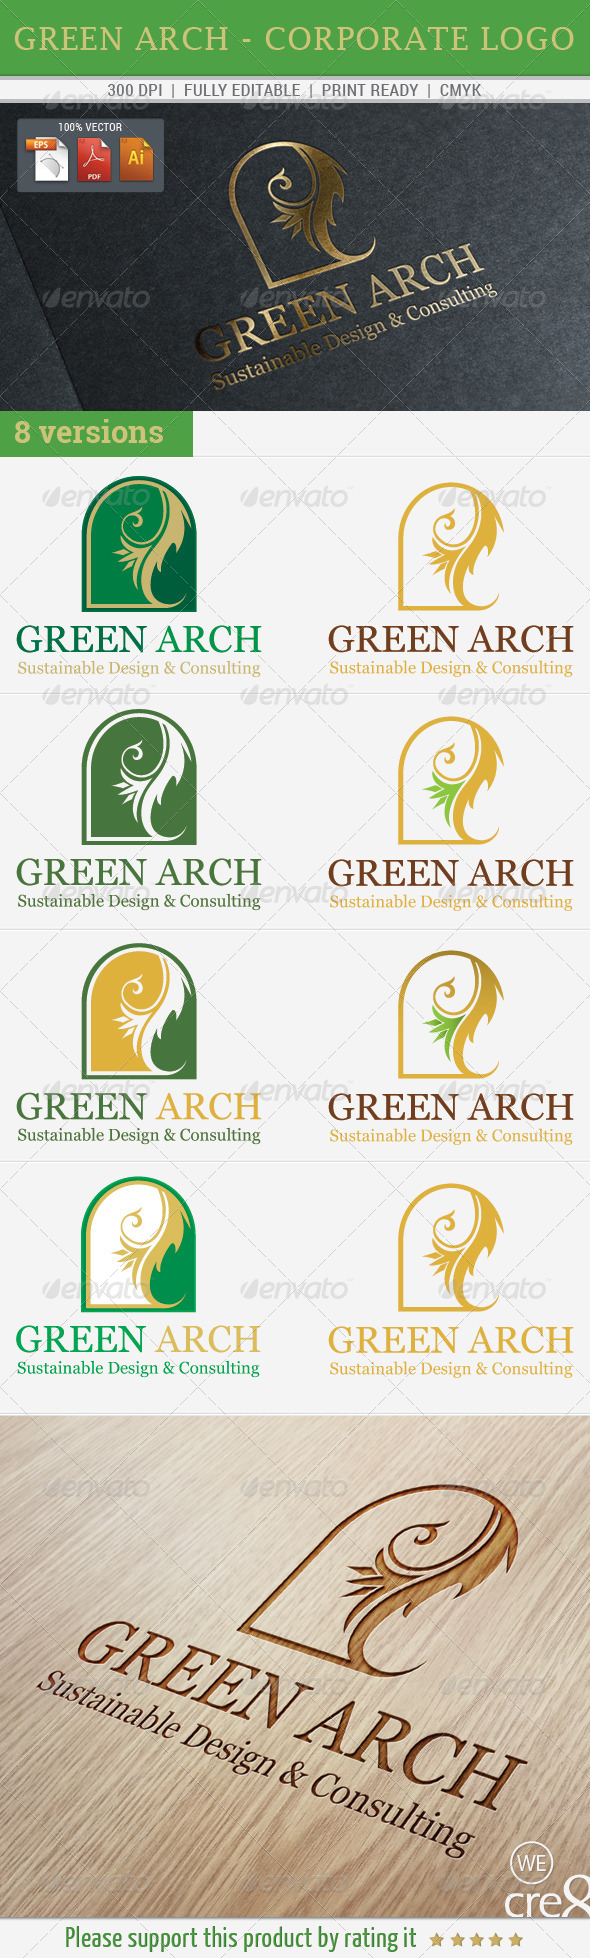 GraphicRiver Green Arch Corporate Logo 5901740